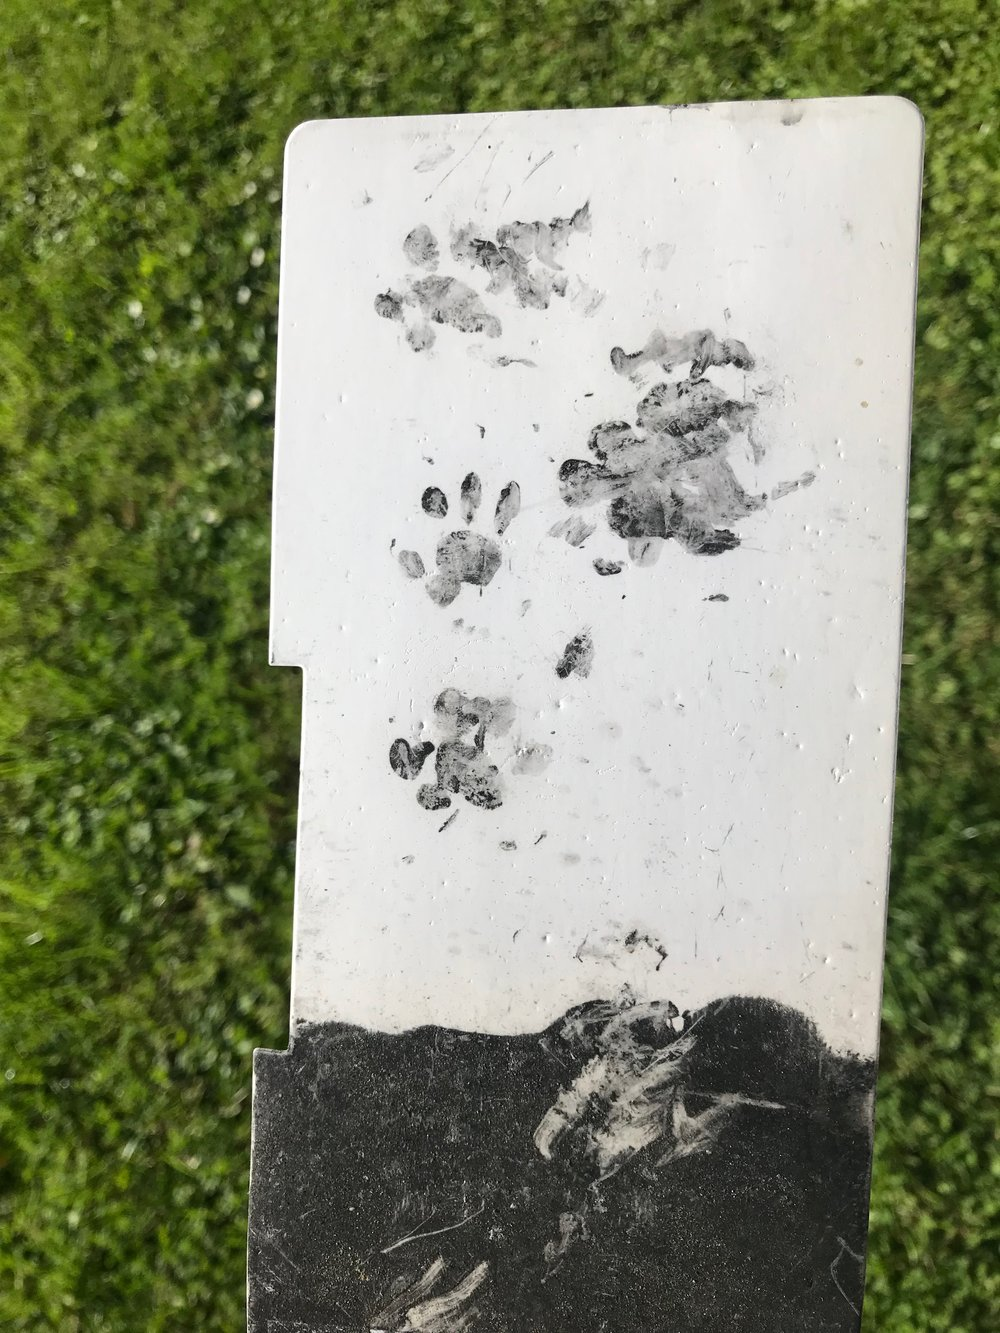 Inky hedgehog footprints.